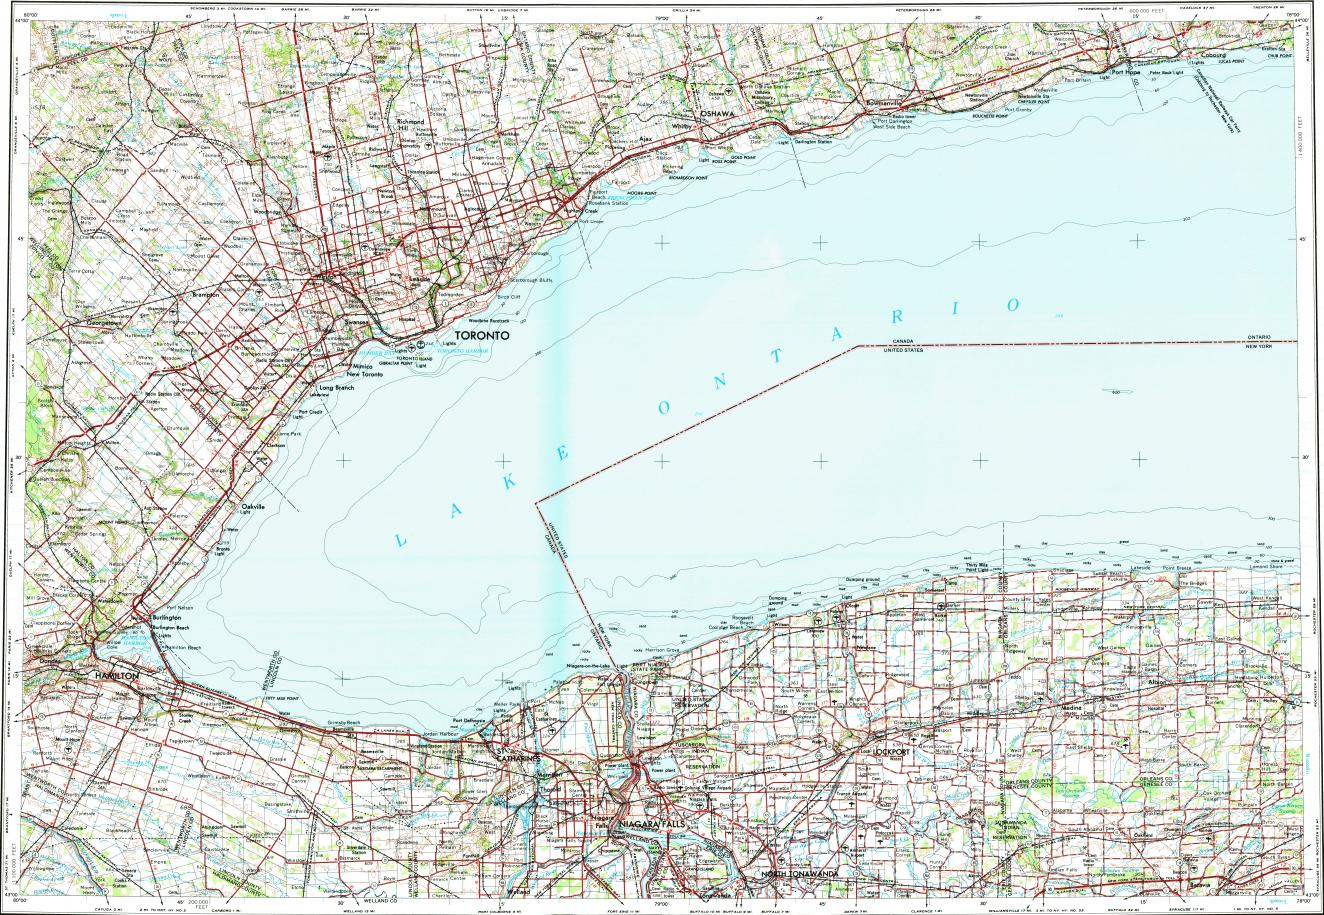 Download Topographic Map In Area Of Toronto Hamilton